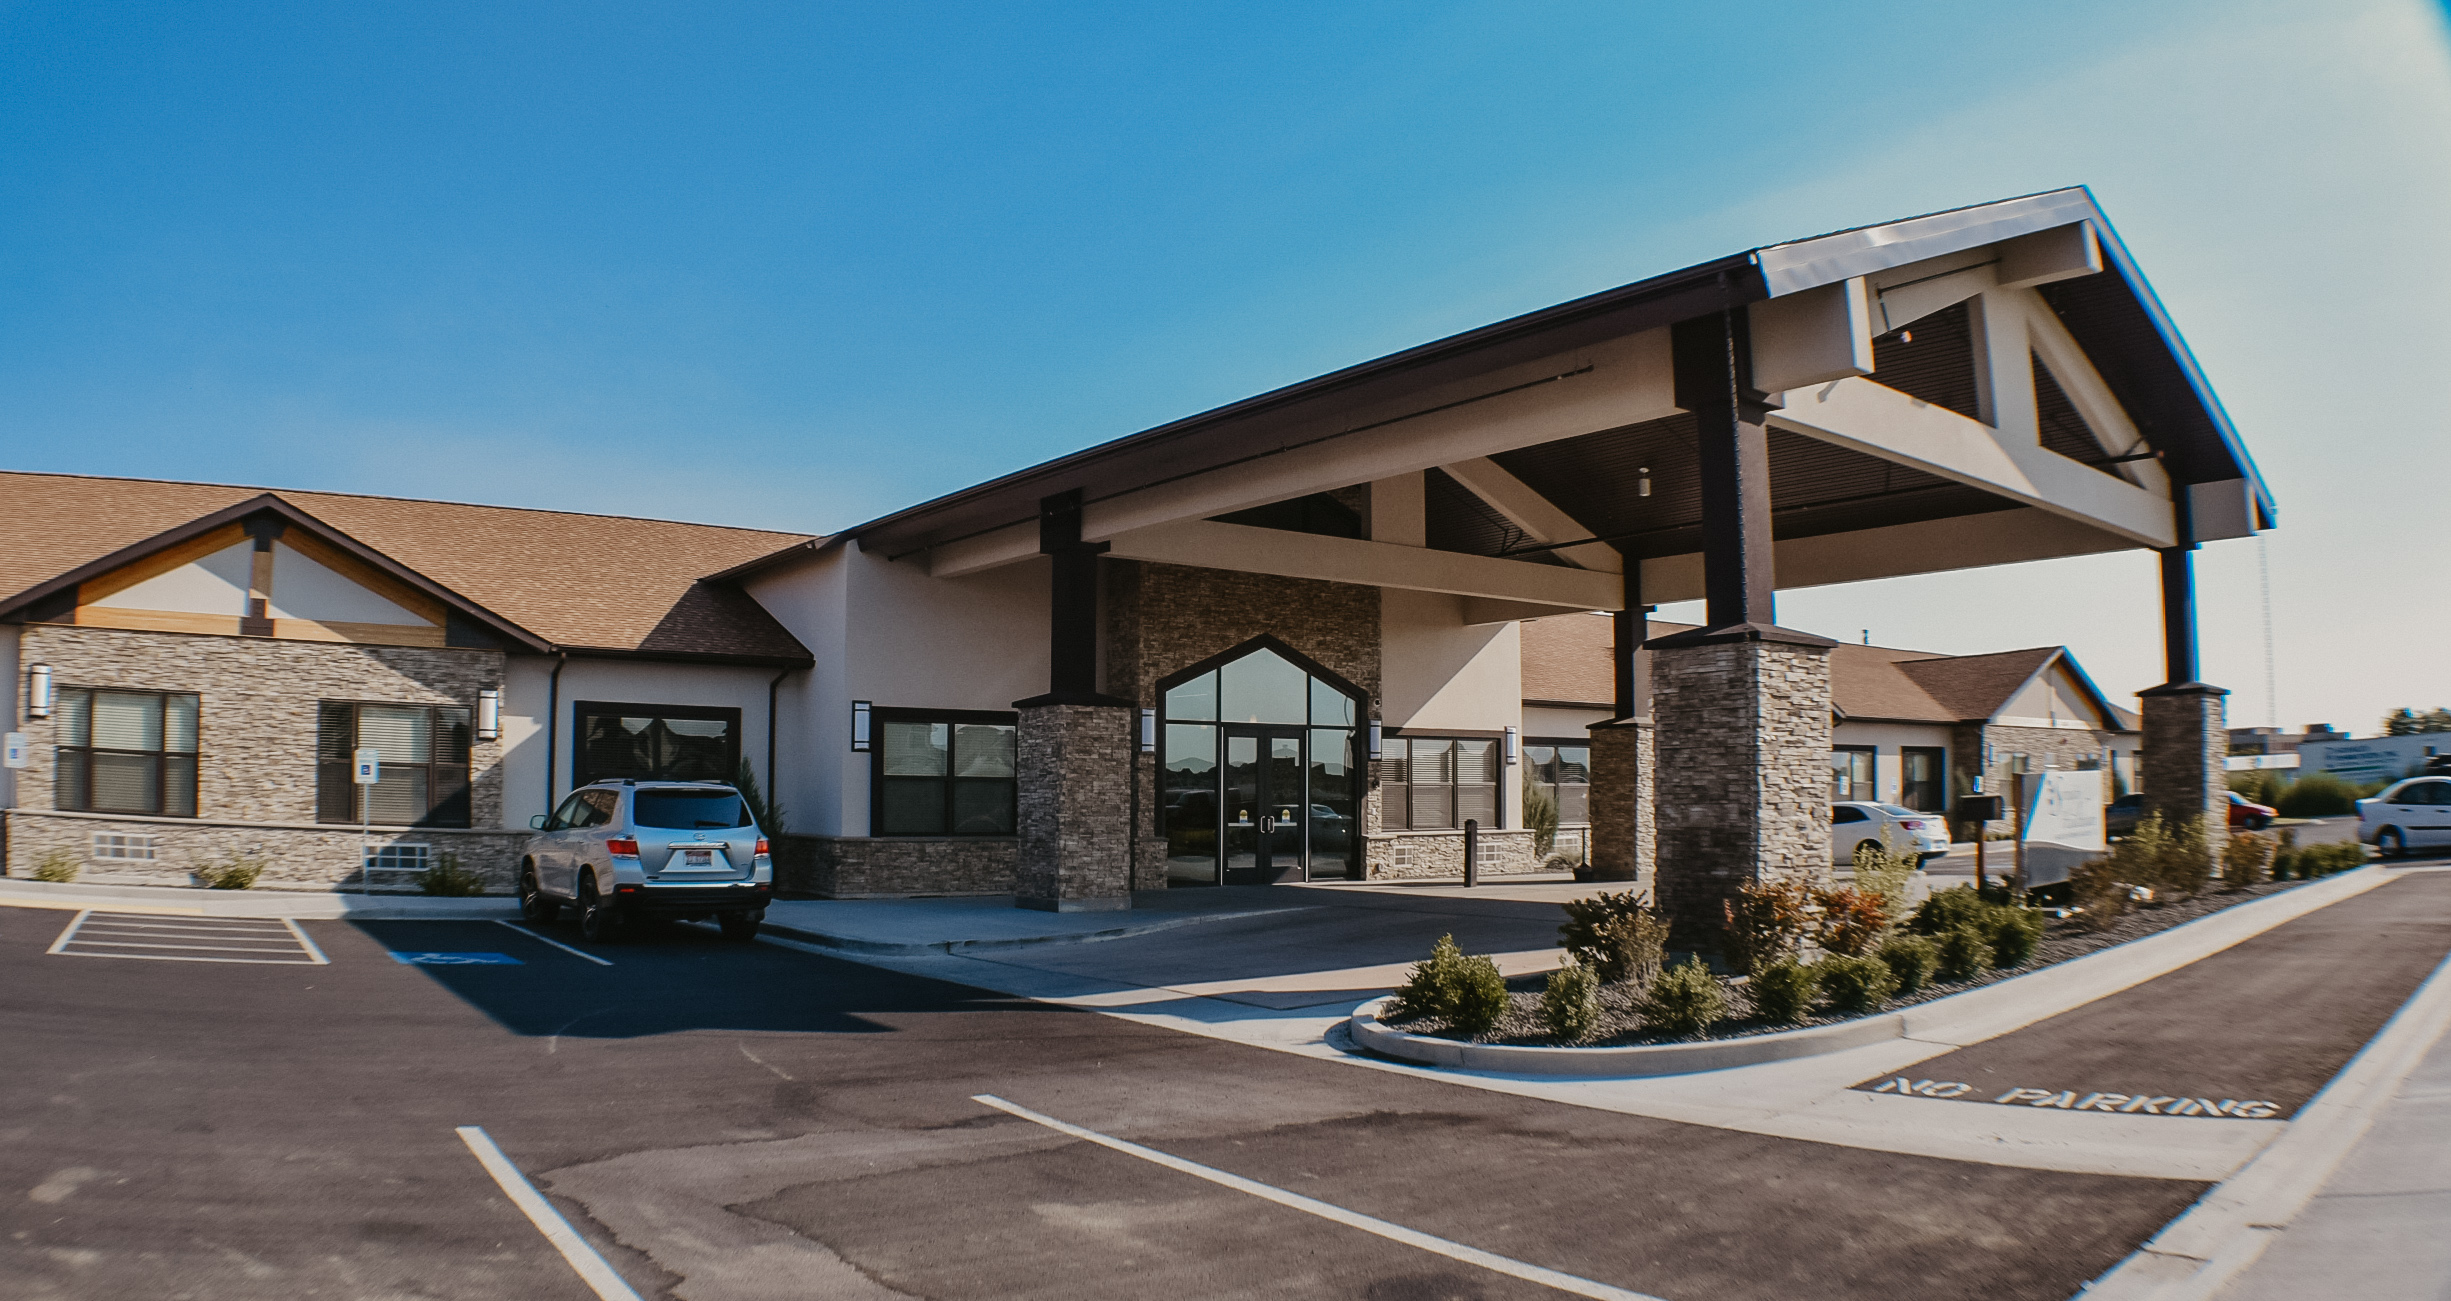 serenity healthcare serenity rehabilitation and care center twin falls idaho senior living twin falls